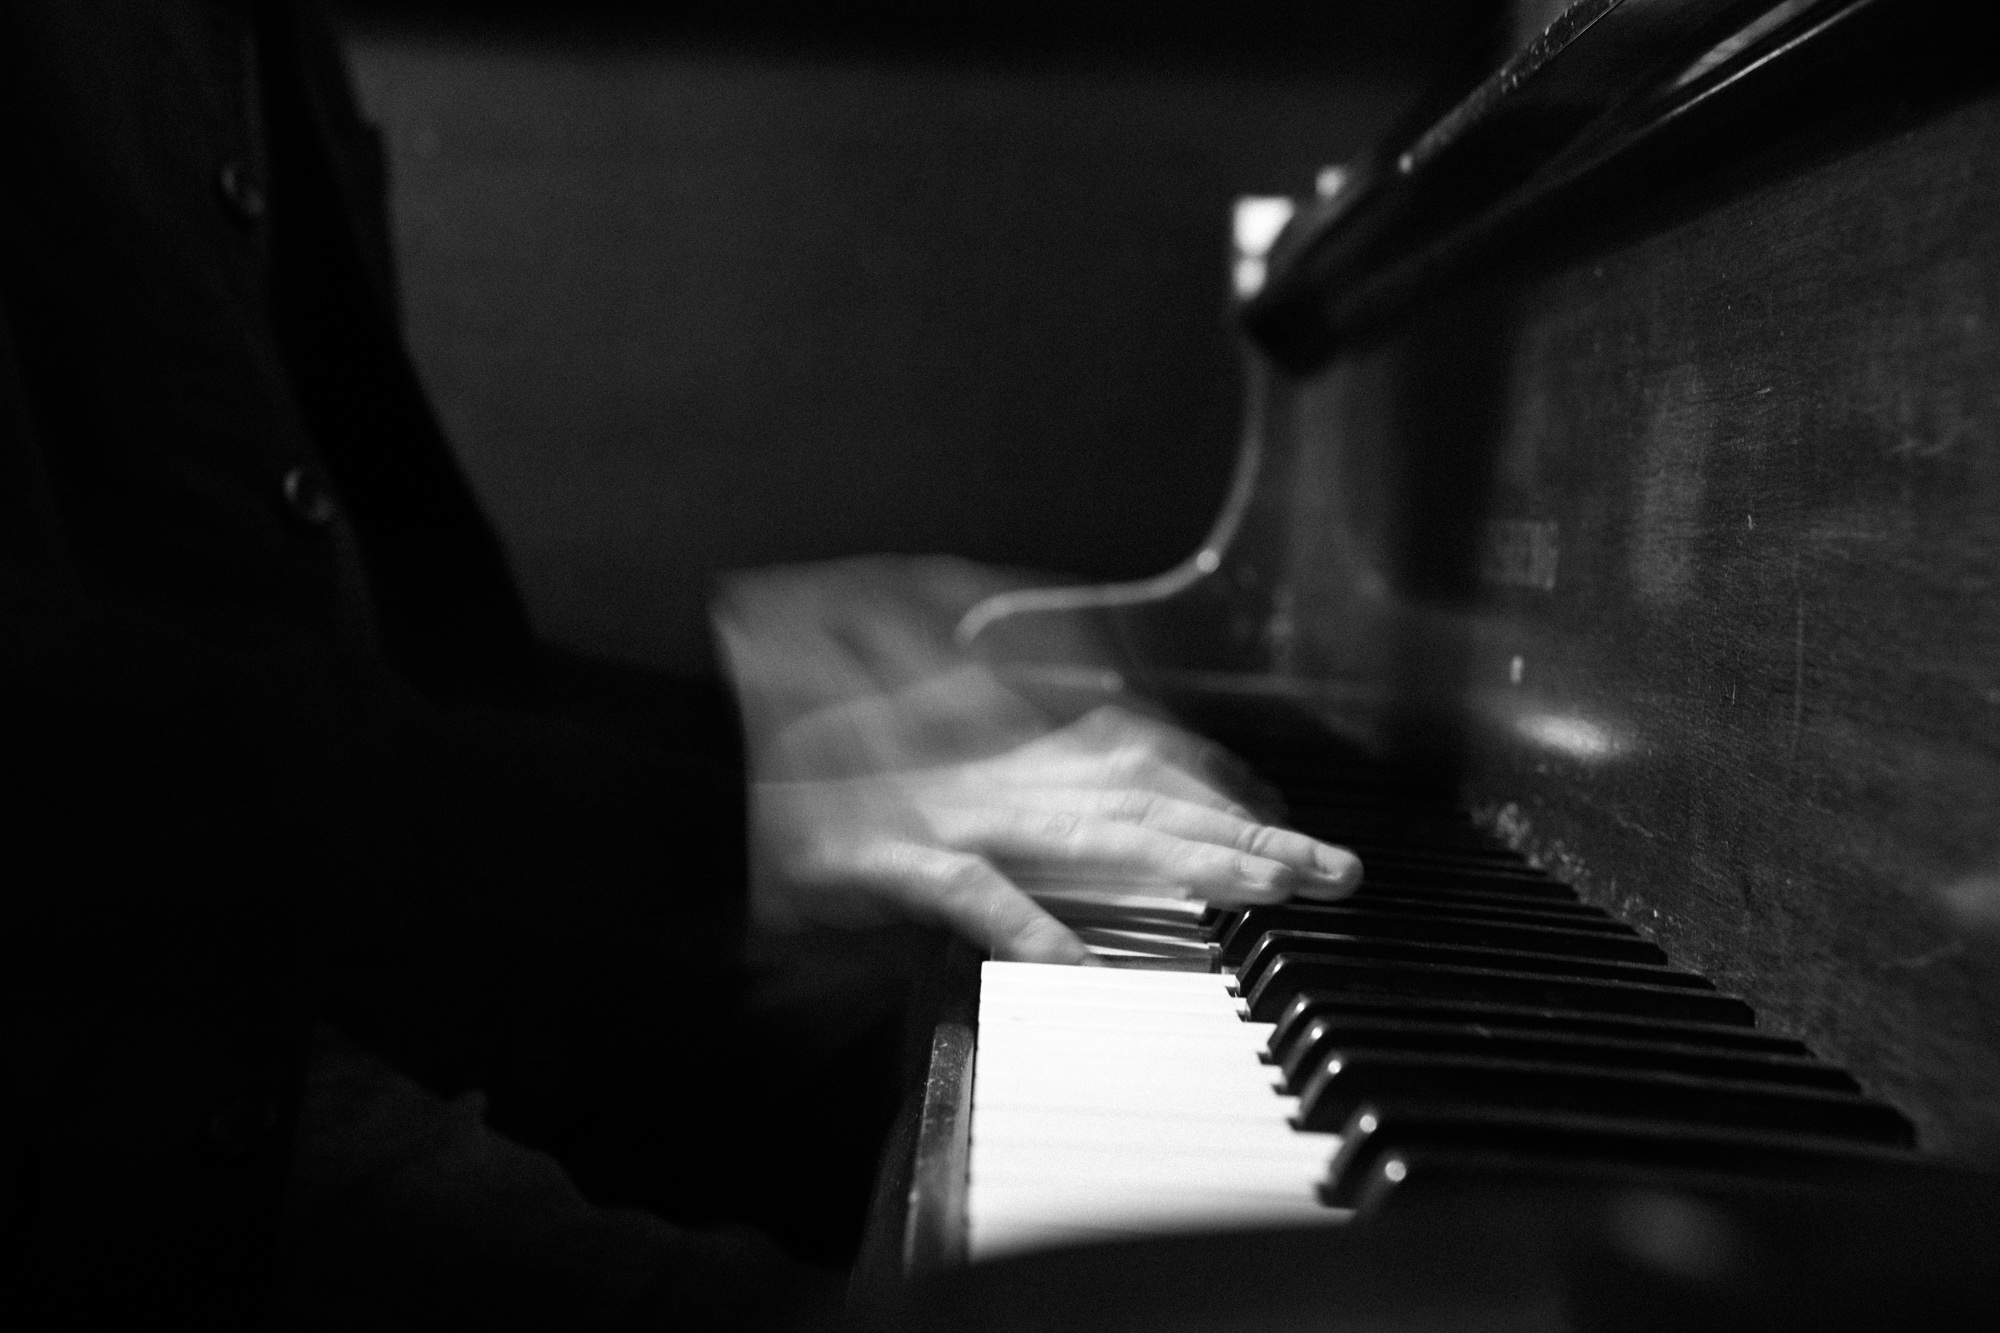 Malthe playing the piano